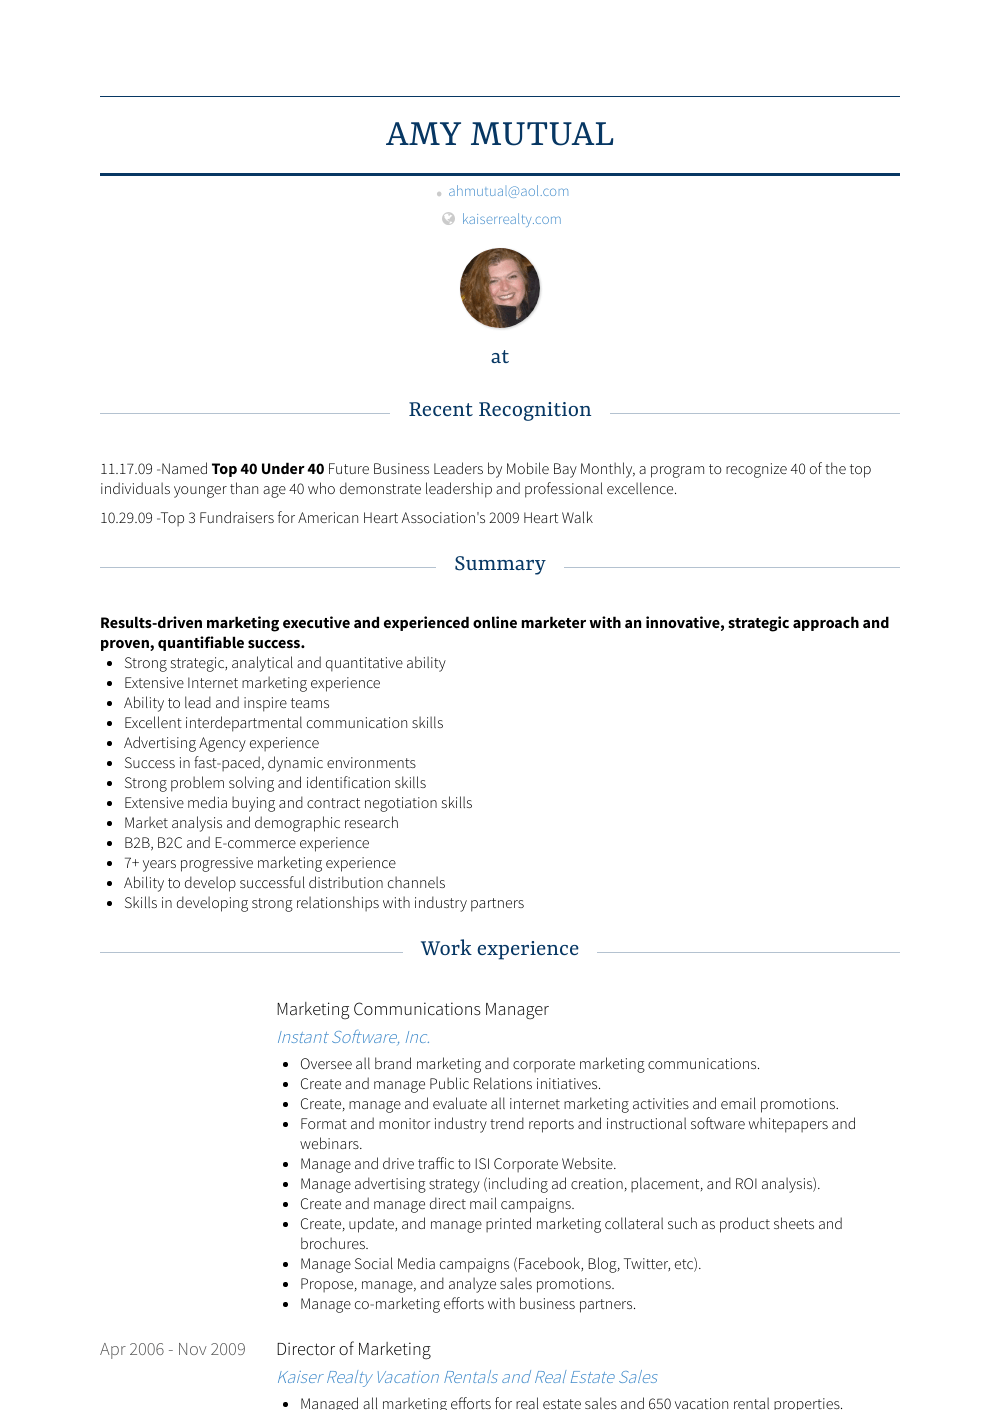 Marketing Communications Manager Resume Sample